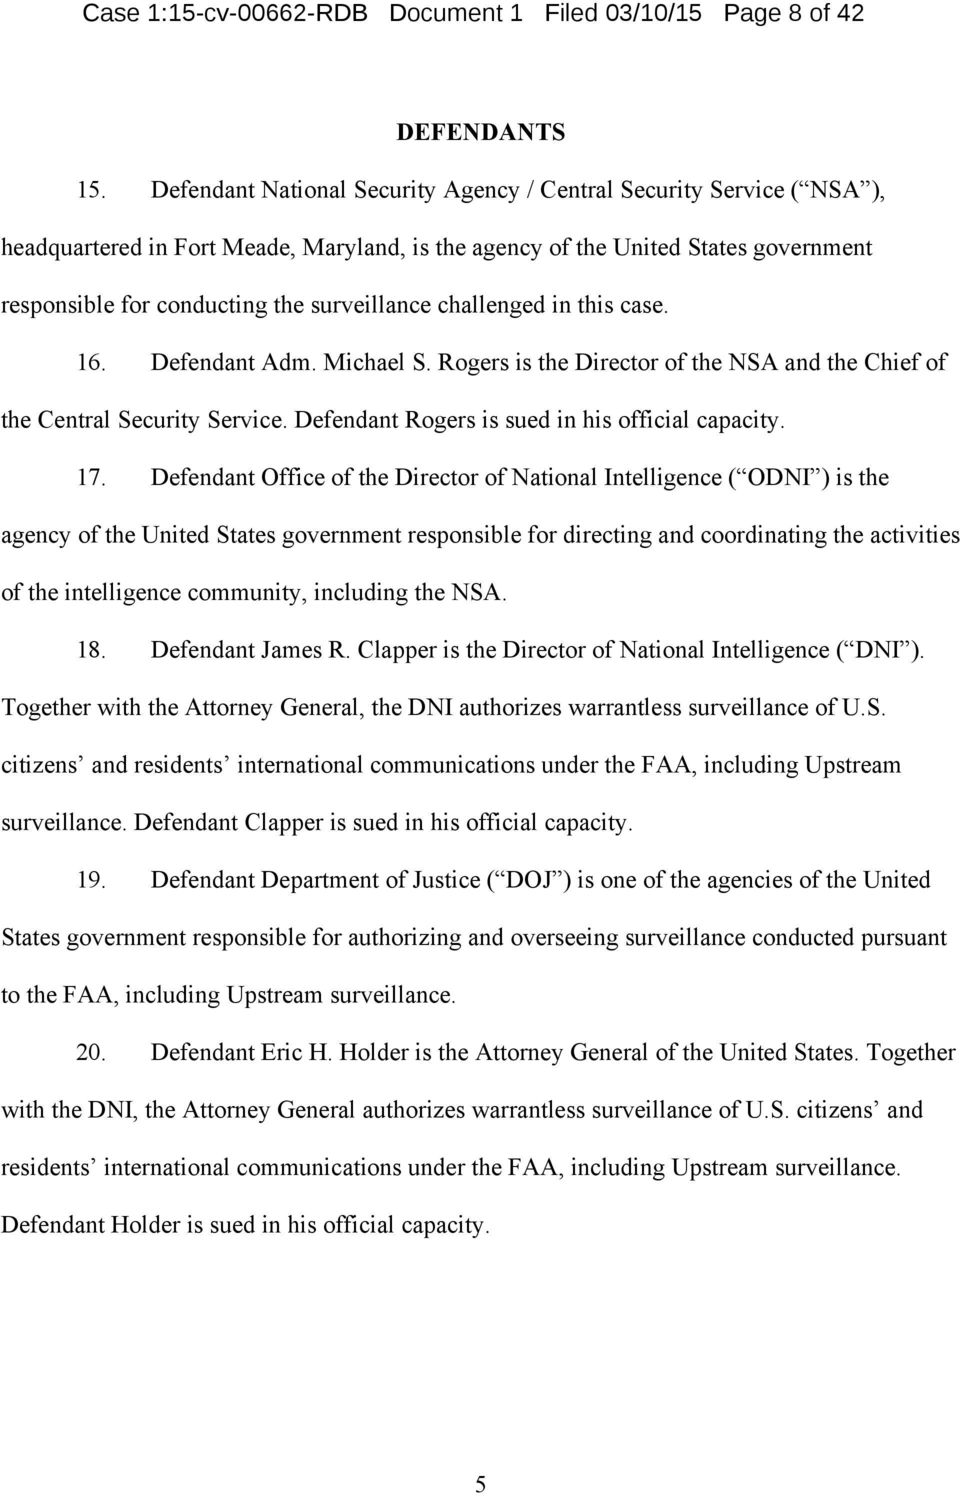 challenged in this case. 16. Defendant Adm. Michael S. Rogers is the Director of the NSA and the Chief of the Central Security Service. Defendant Rogers is sued in his official capacity. 17.